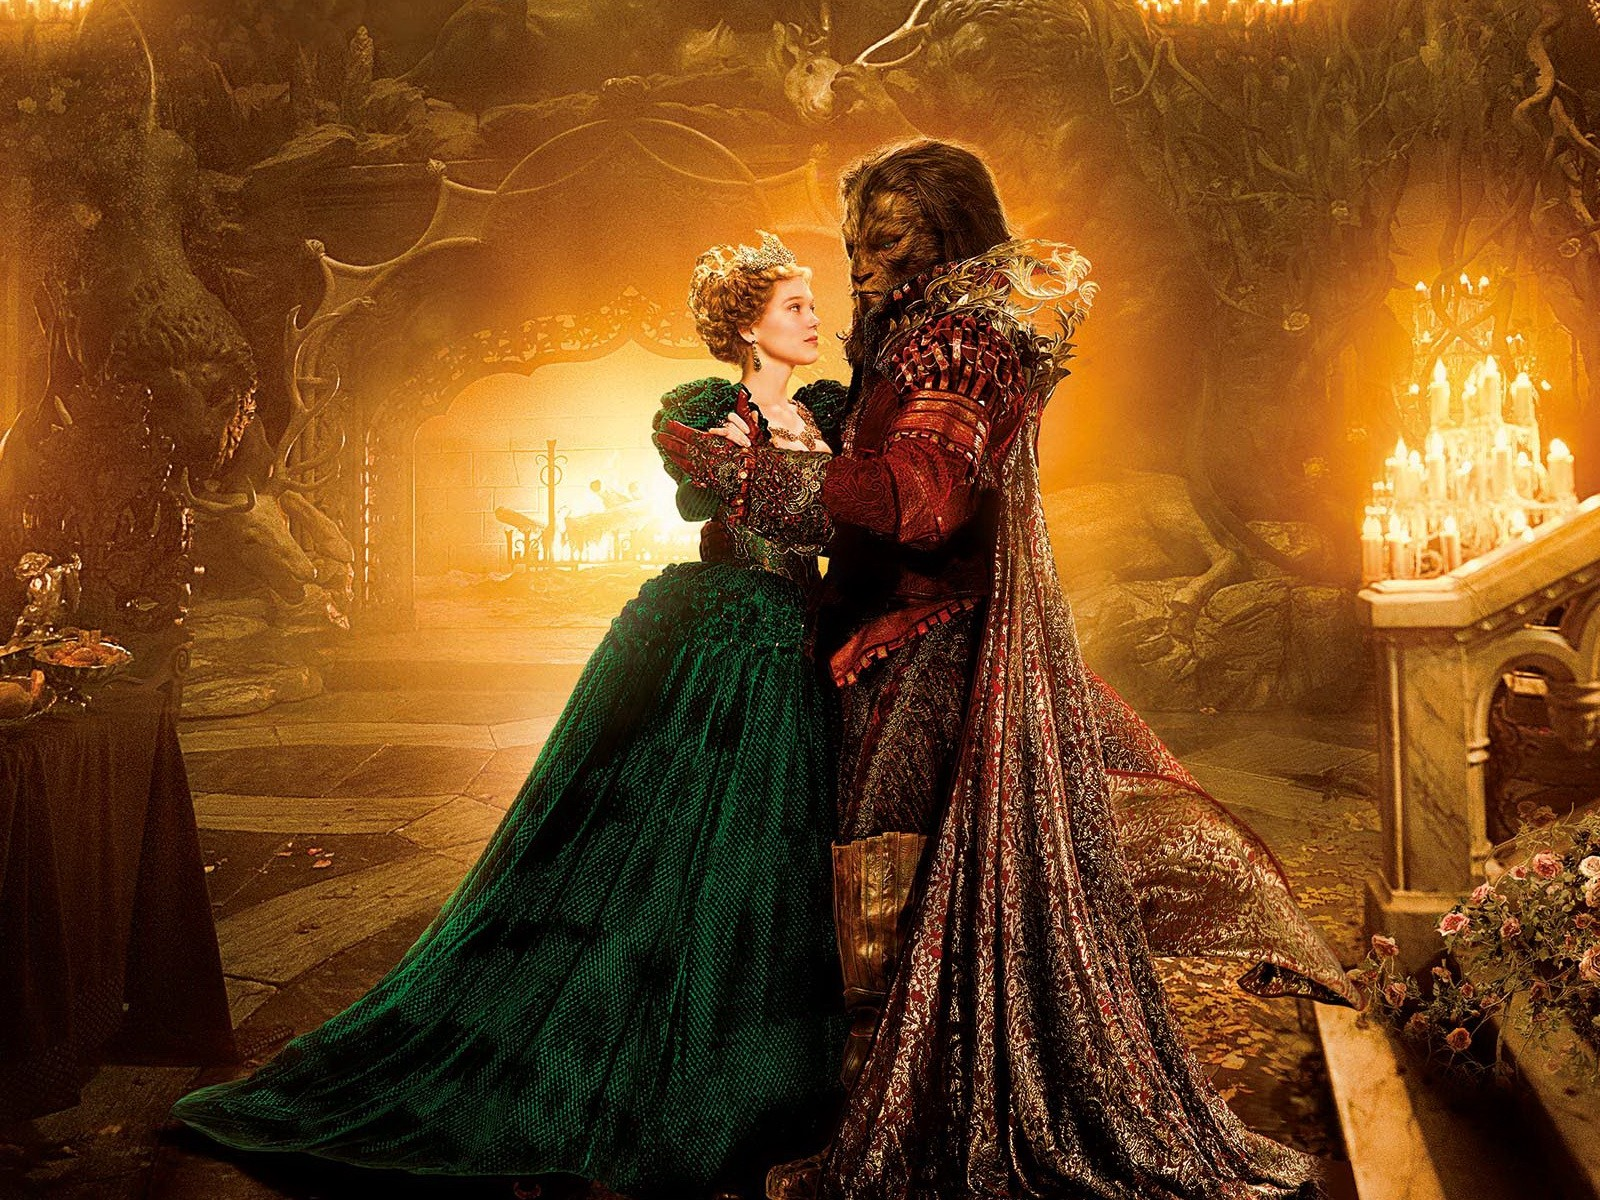 Beauty And The Beast Hd Wallpaper 1600x1200 Hd Wallpaper